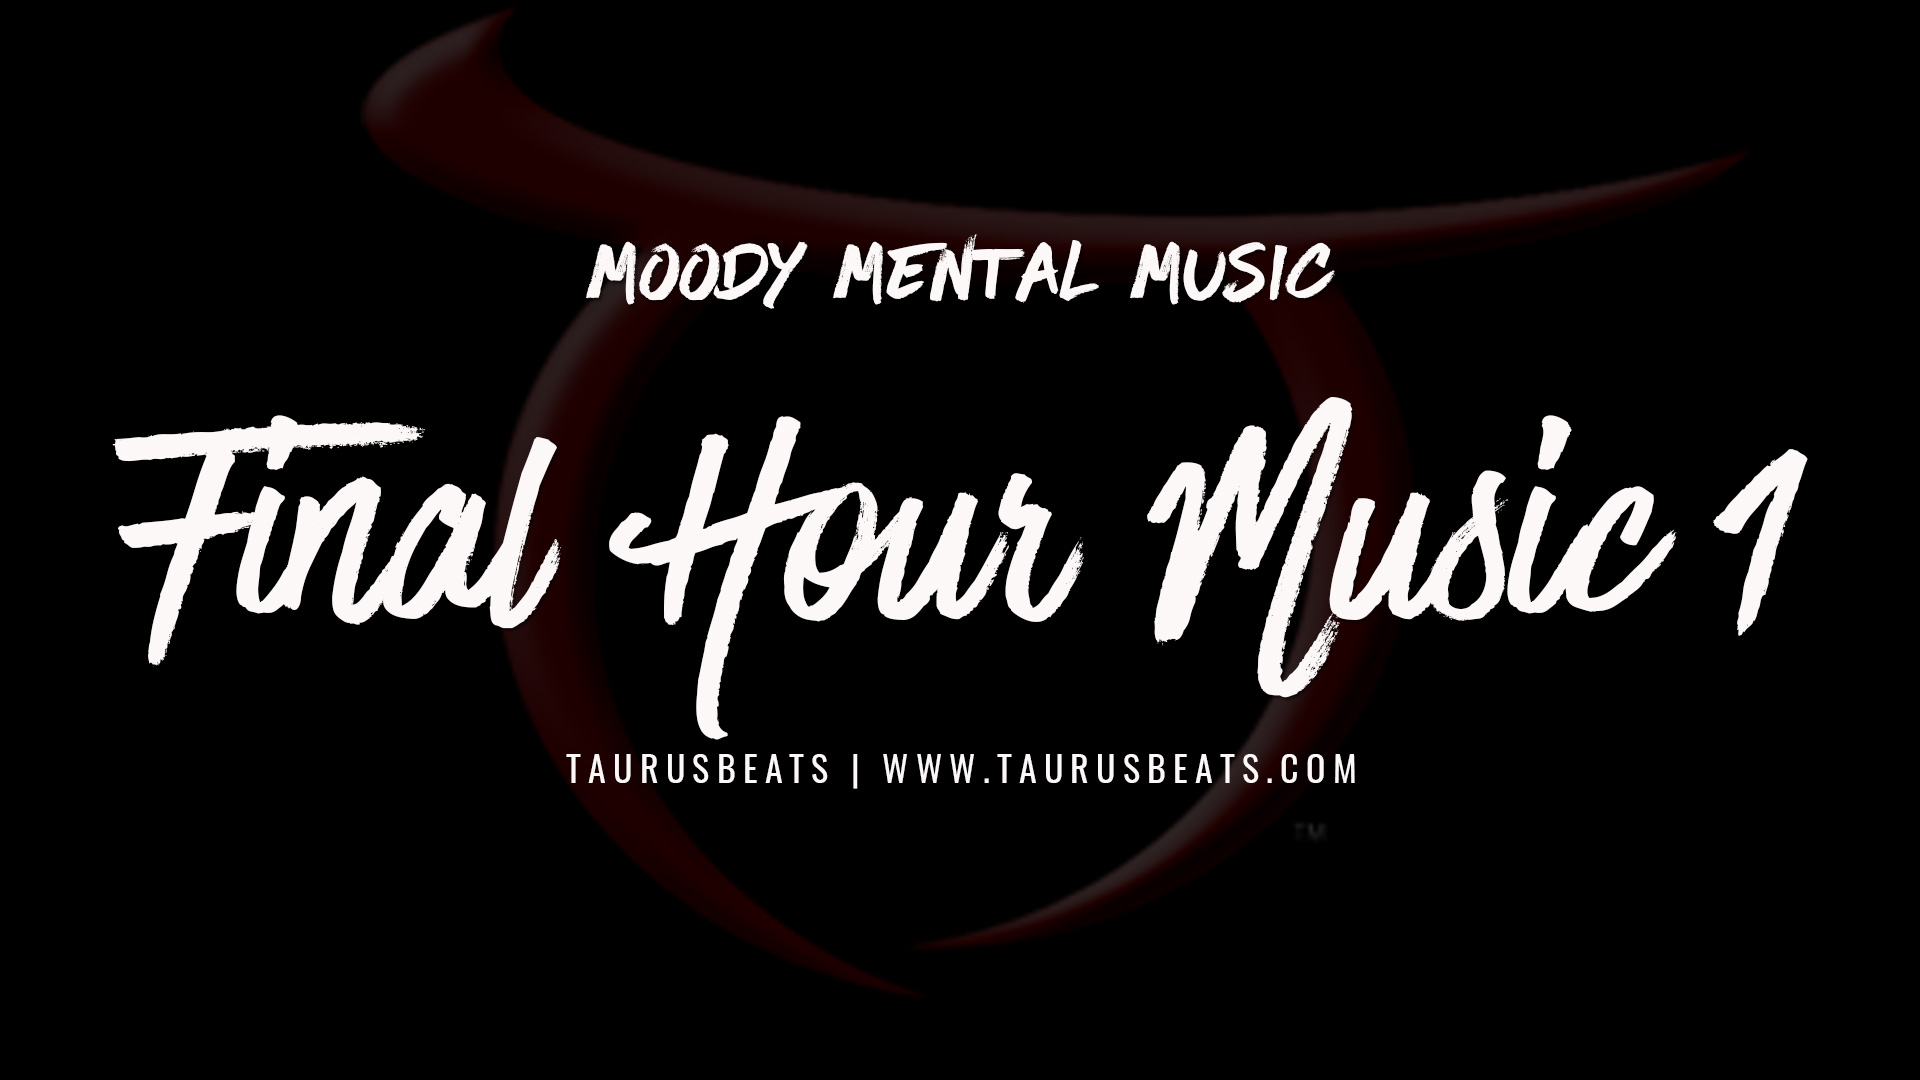 image for Final Hour Music 1 (2003)